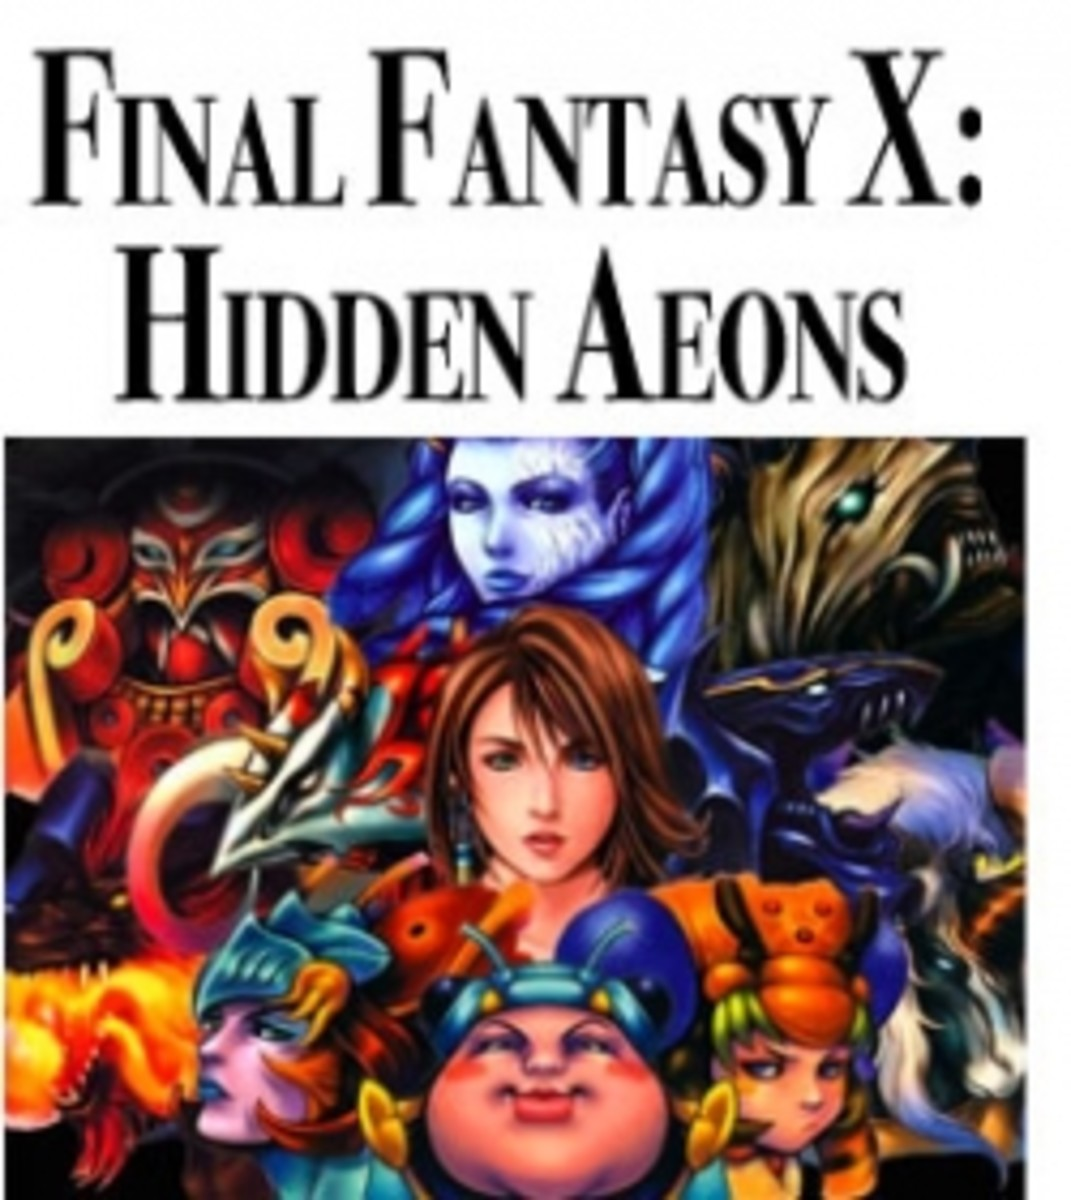 Final Fantasy X: Hidden Aeons